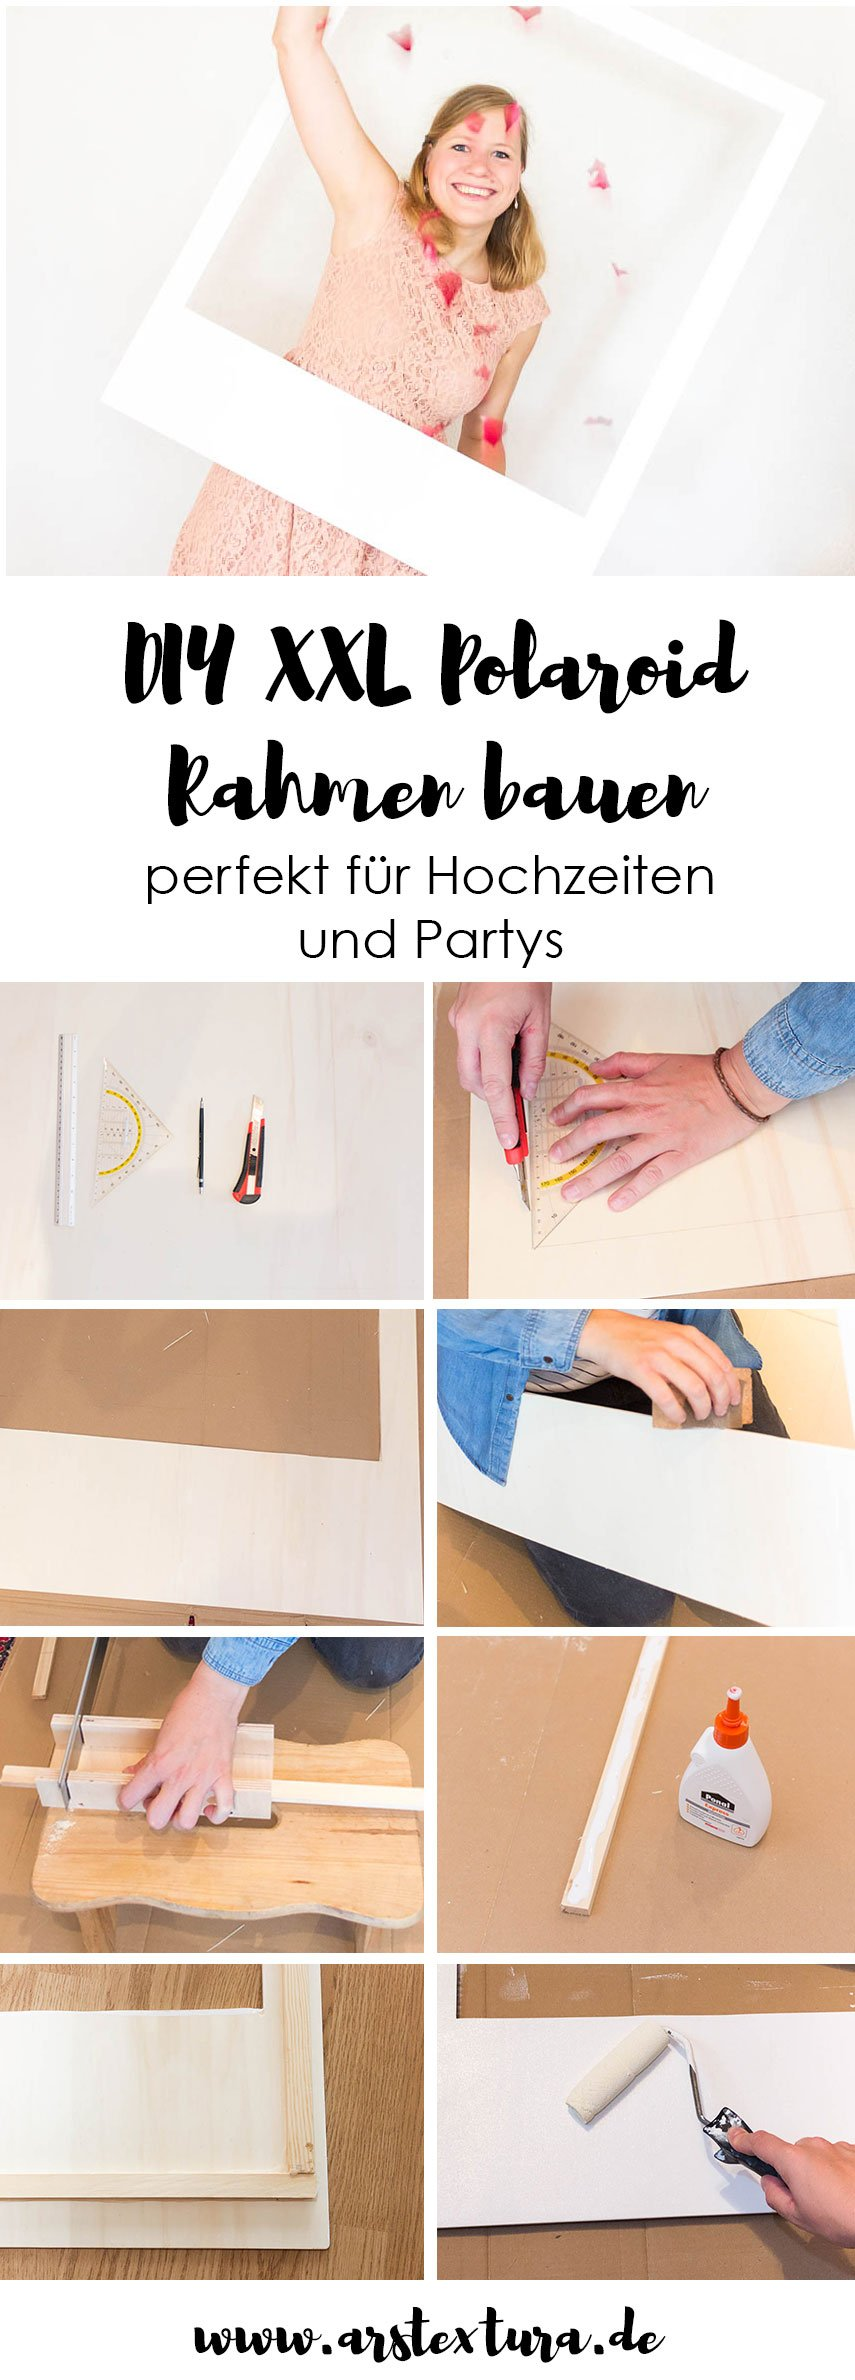 diy bilderrahmen f r die fotobox auf deiner hochzeit ars textura. Black Bedroom Furniture Sets. Home Design Ideas